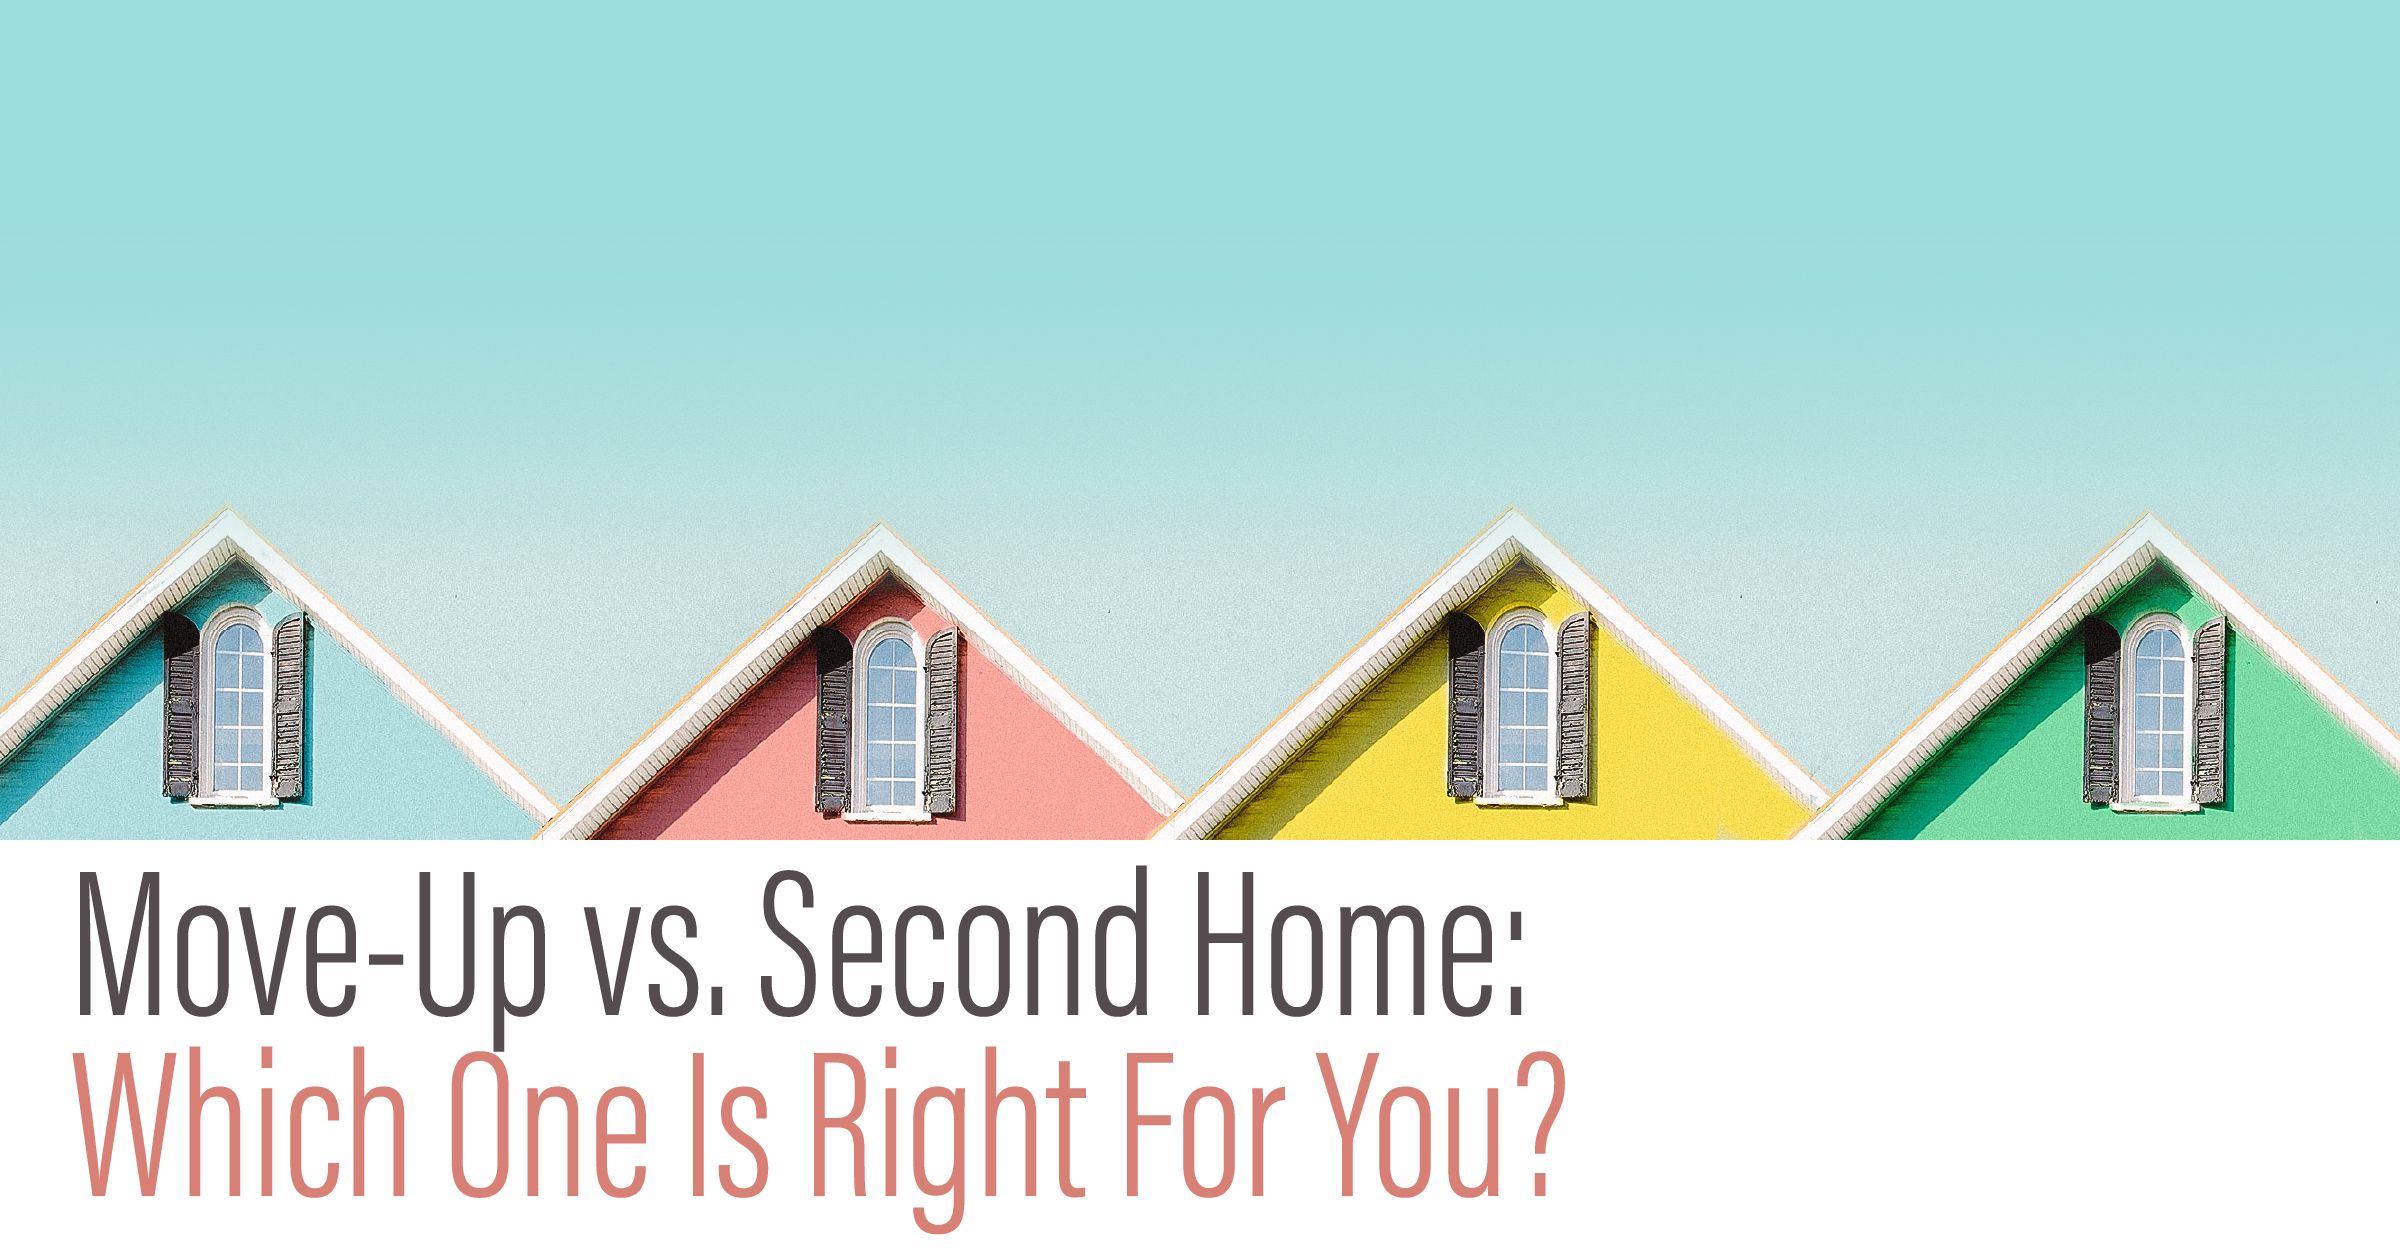 Move Up Vs. Second Home